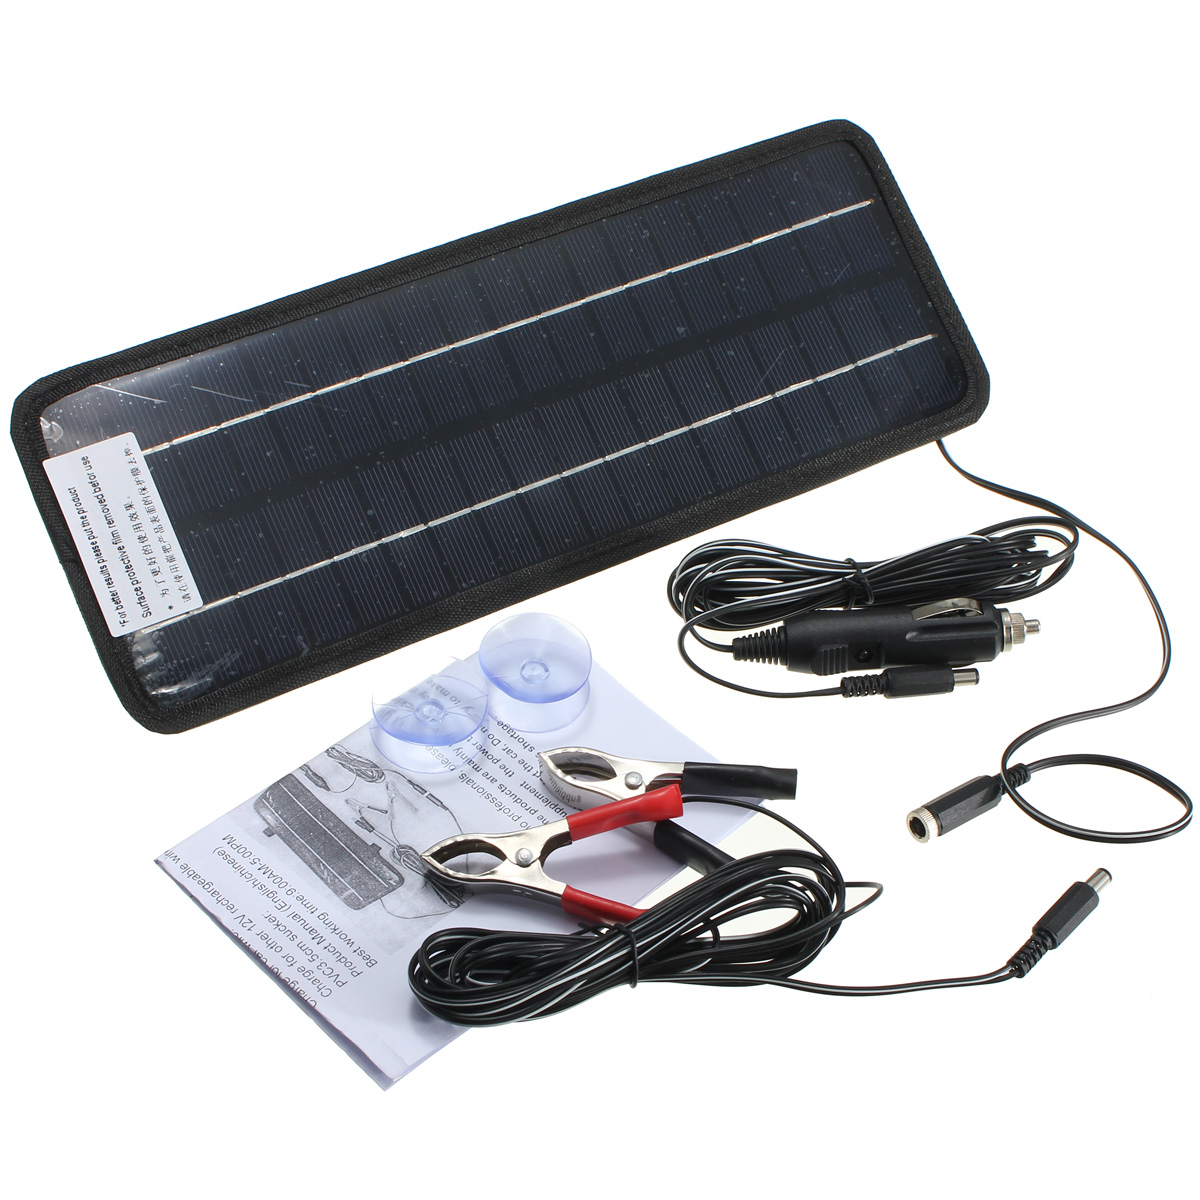 12V 4.5W Portable Power Solar Panel Battery Charger For